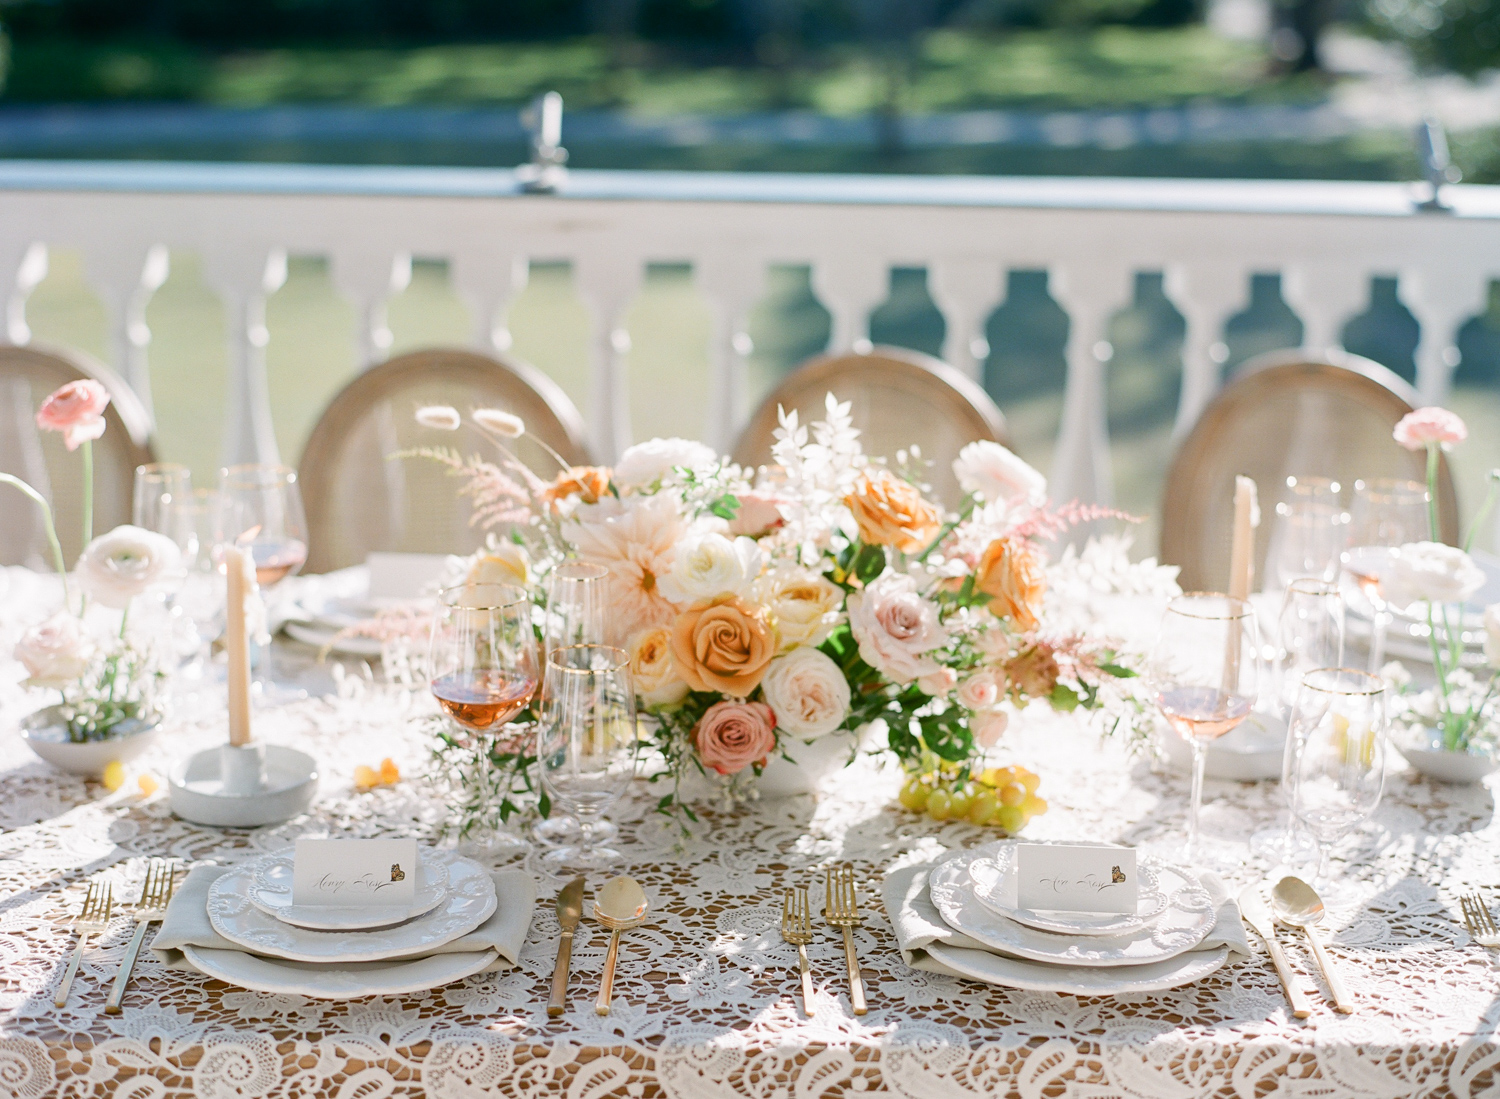 Tabletop-Wedding-Lowndes-Grove.jpg